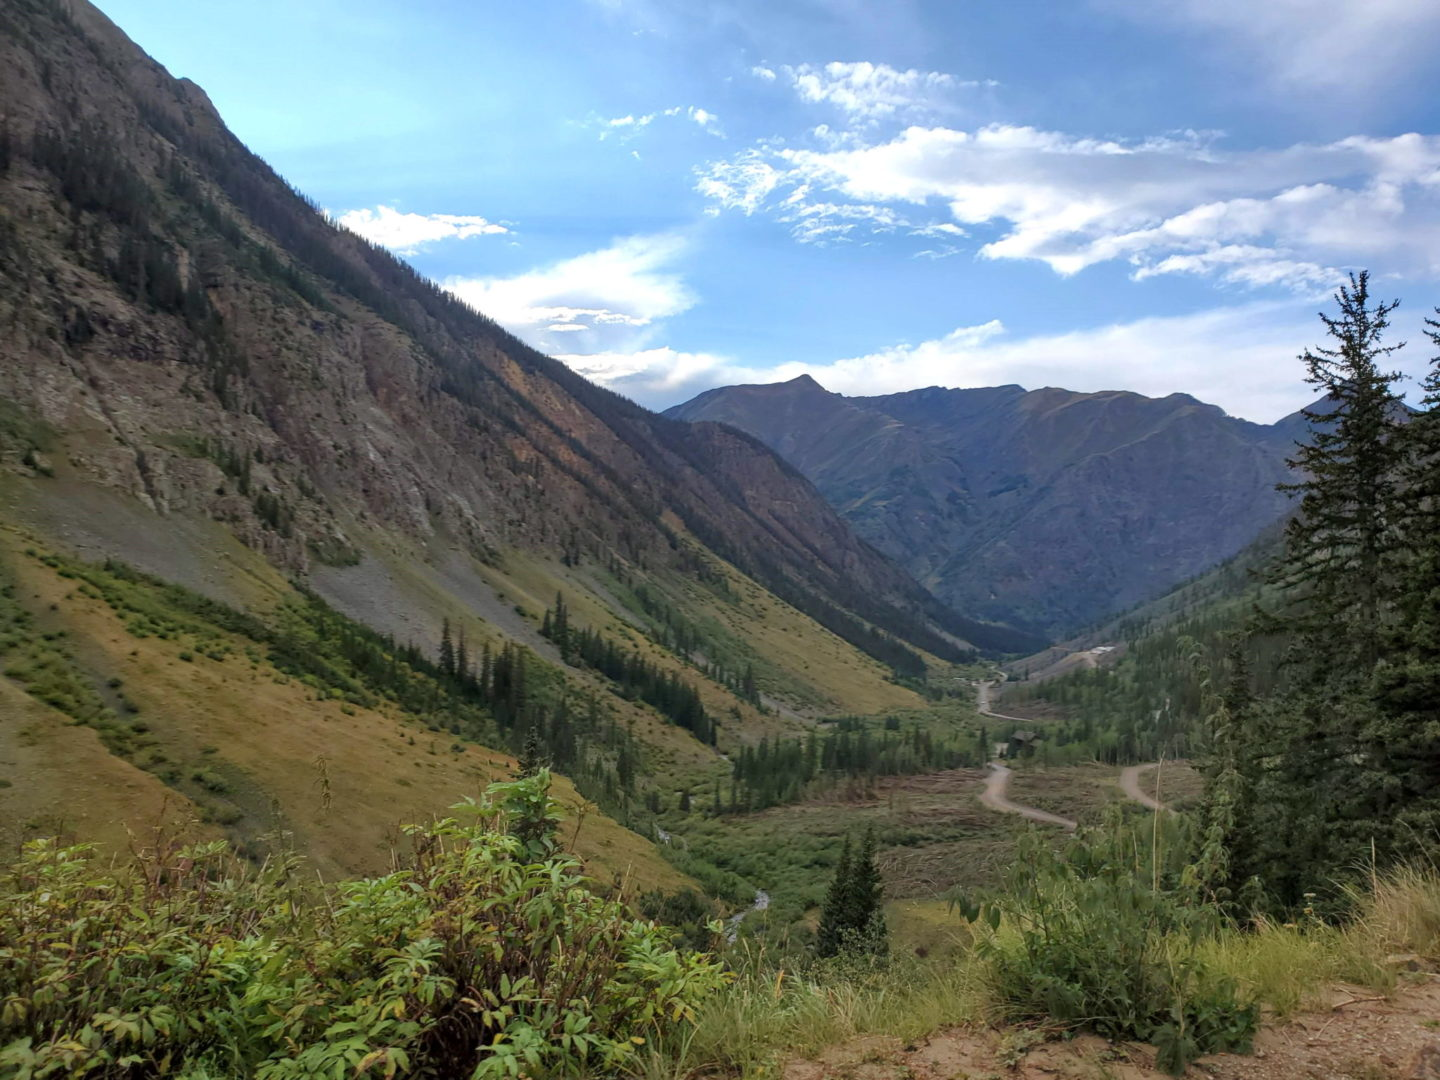 View back into valley (Silverton area)